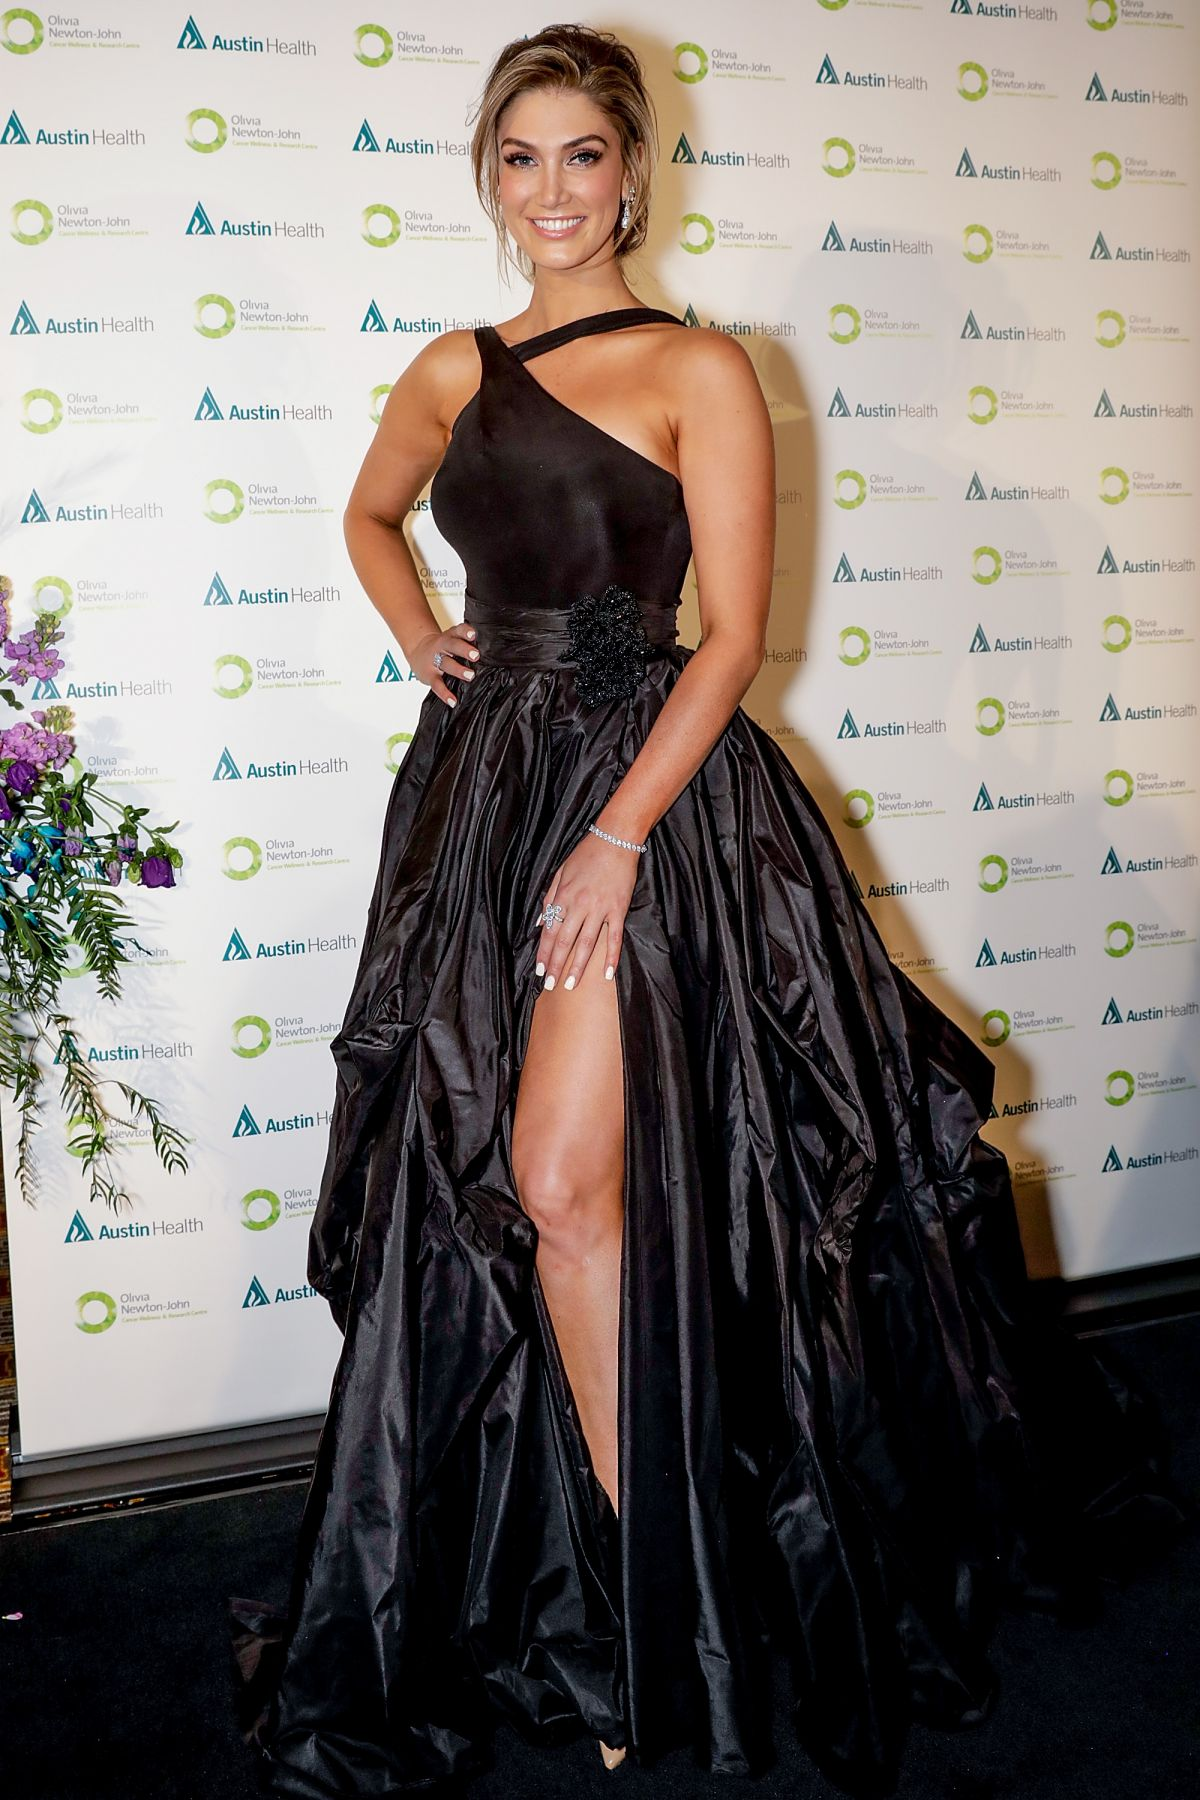 DELTA GOODREM at Olivia Newton-John Gala Red Carpet in Melbourne 09/08/2017